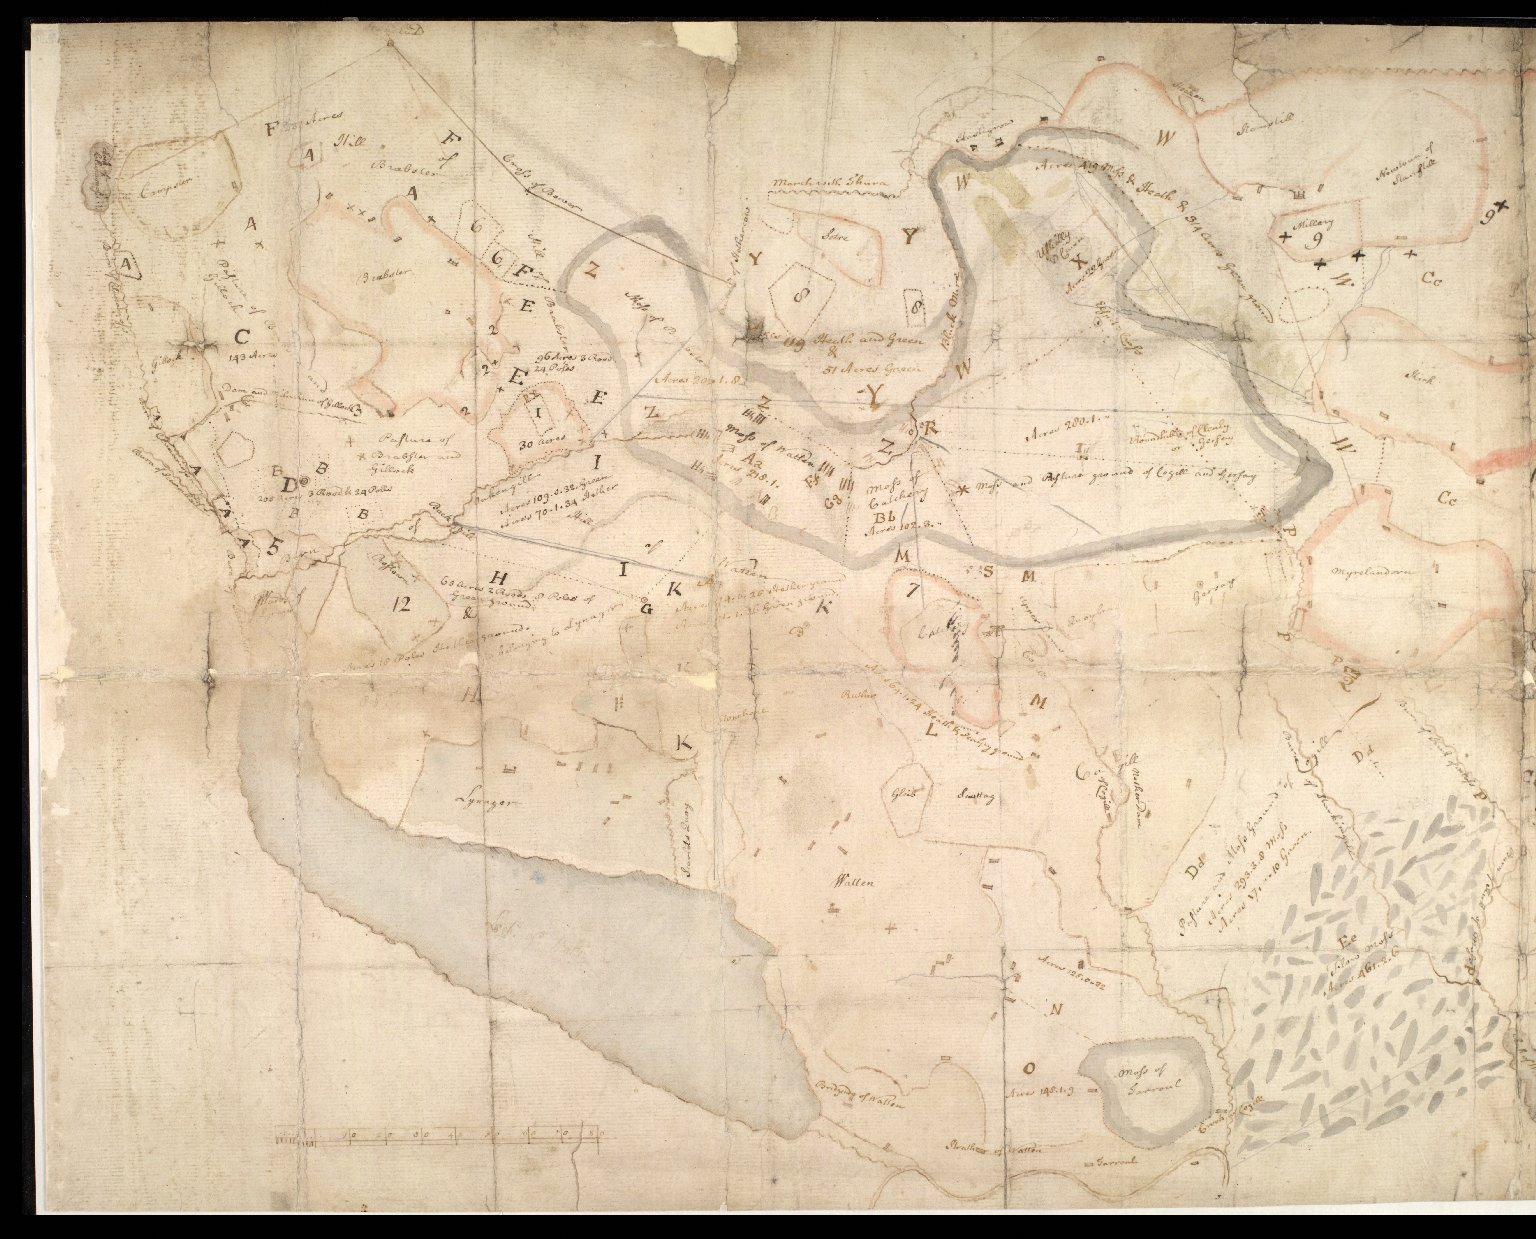 [Plan of the lands of Lynegar, Brabster and Watten] [1 of 2]